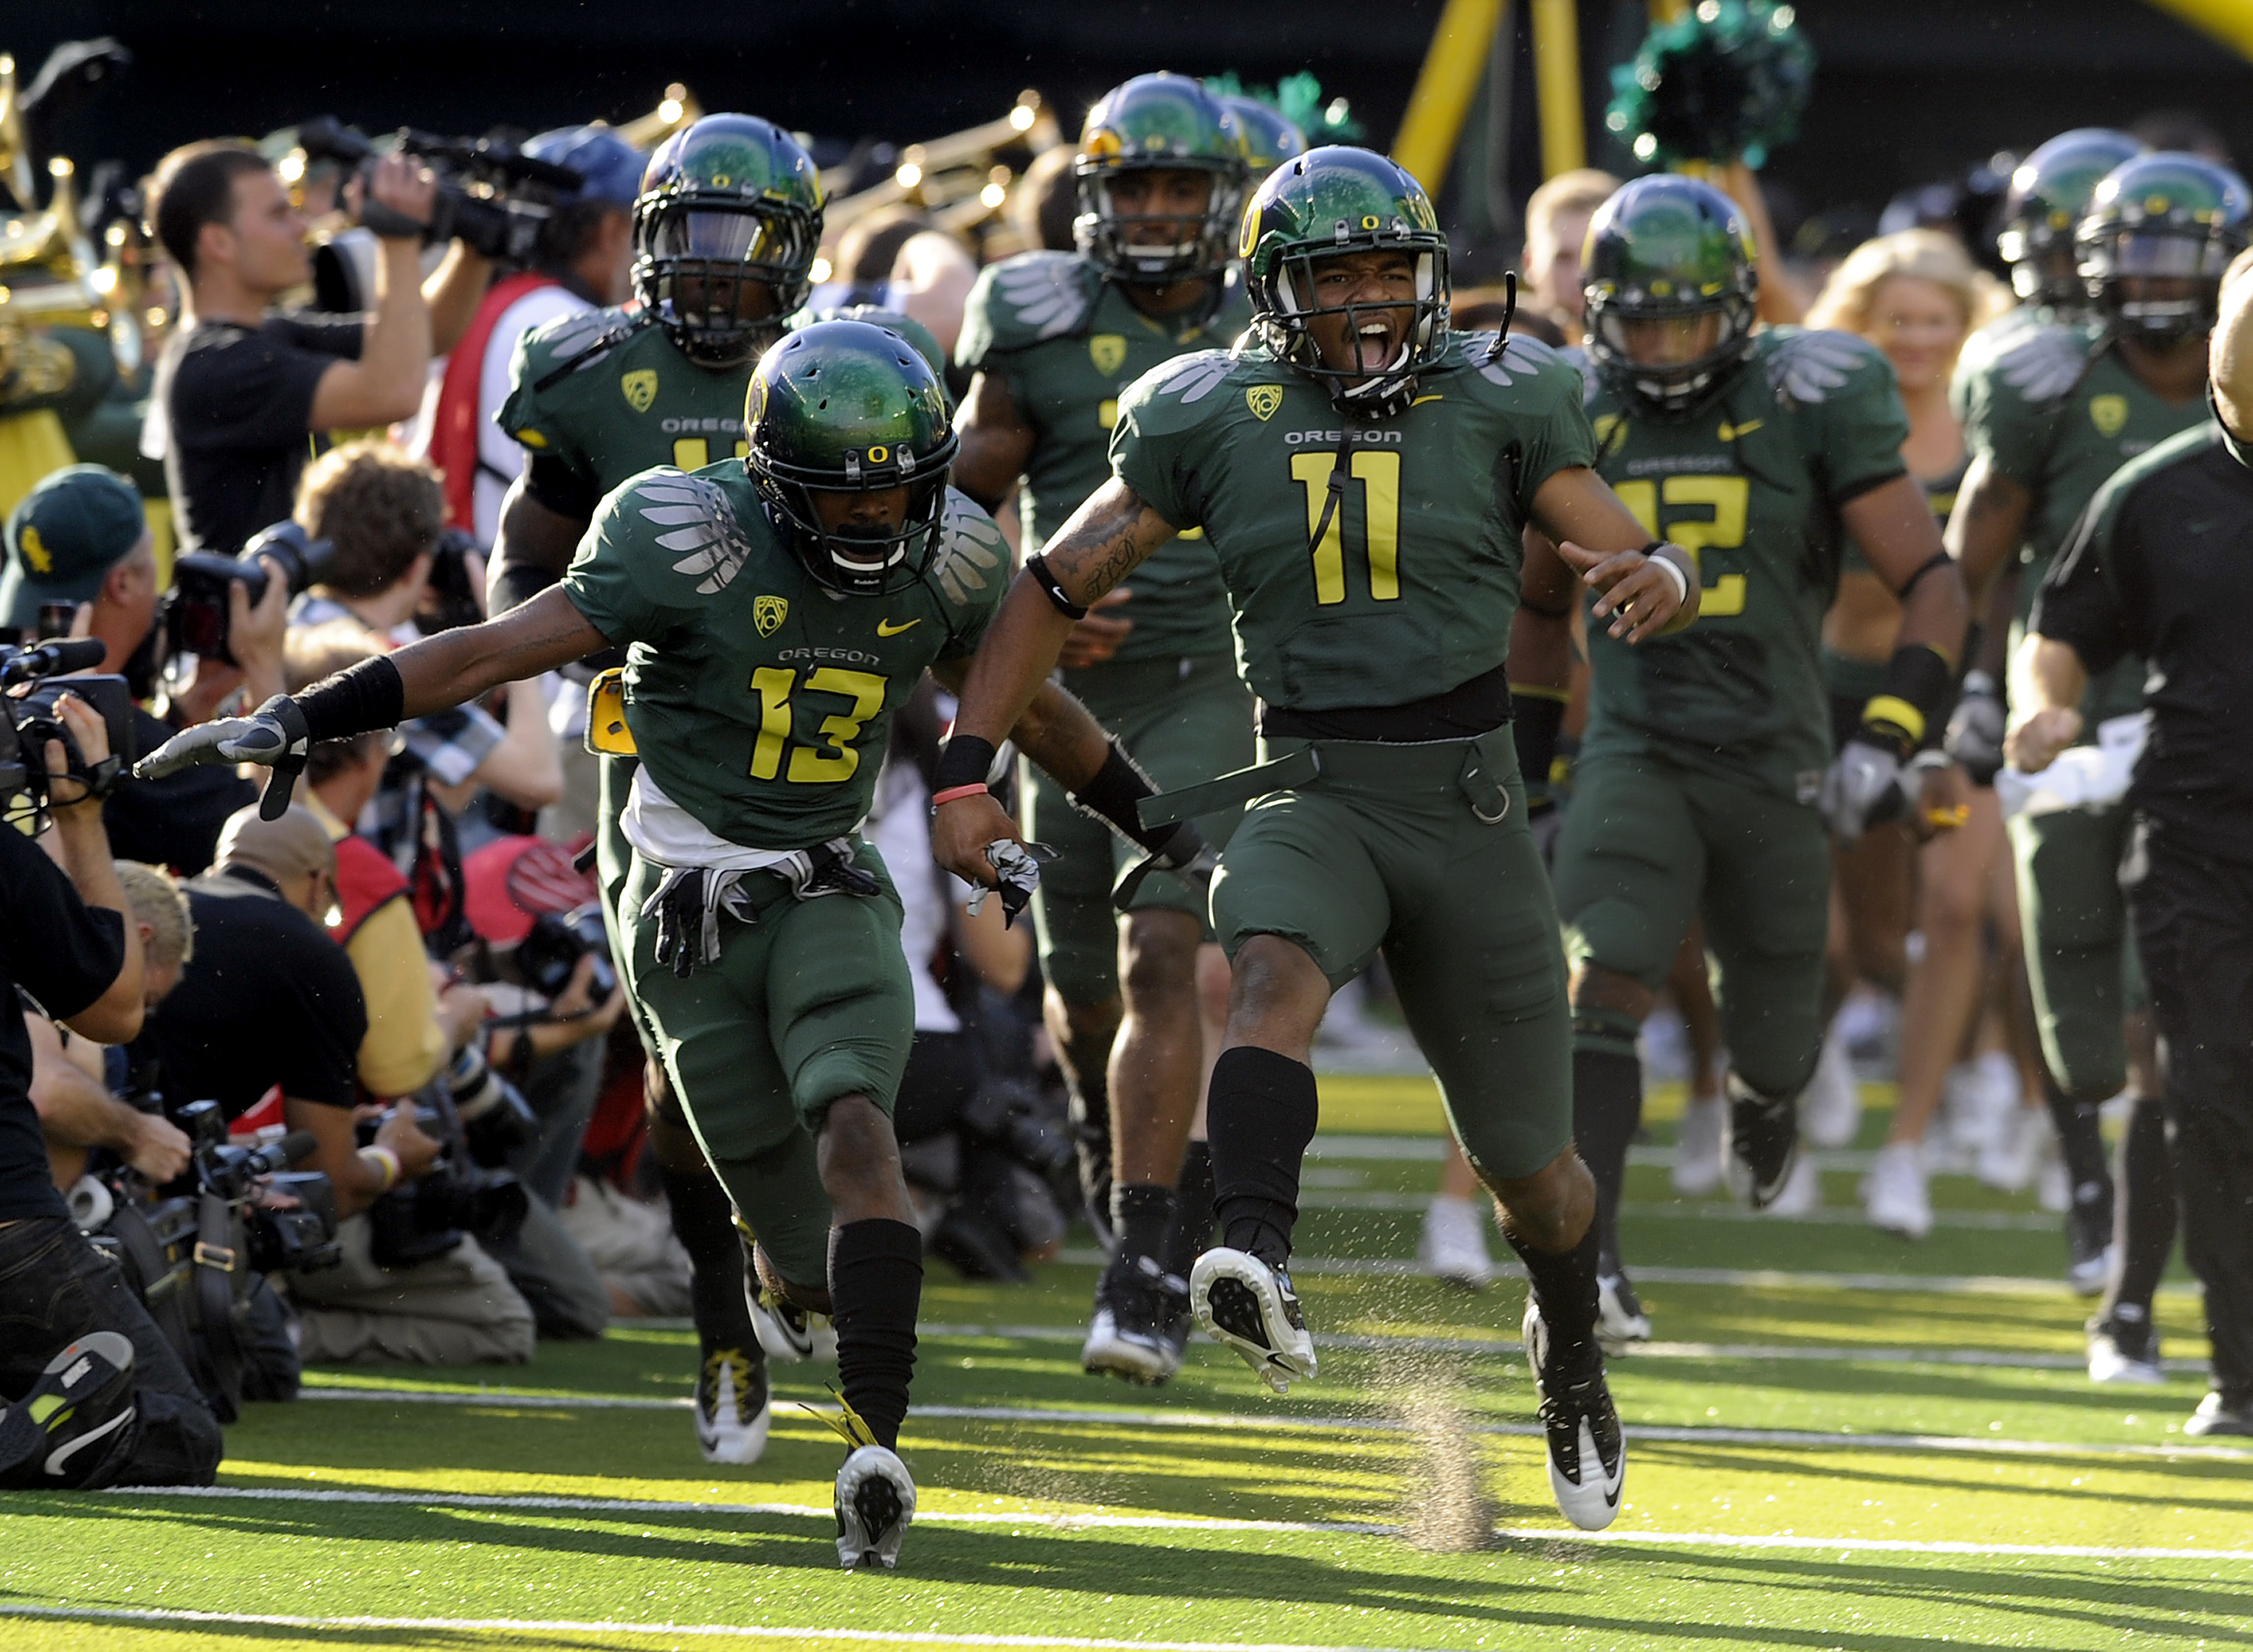 EUGENE, OR - OCTOBER 2: Cornerback Cliff Harris #13  and rover Eddie Pleasant #11 of the Oregon Ducks lead the team onto the field for the game against the Stanford Cardinal at Autzen Stadium on October 2, 2010 in Eugene, Oregon. Oregon won the game 52-31